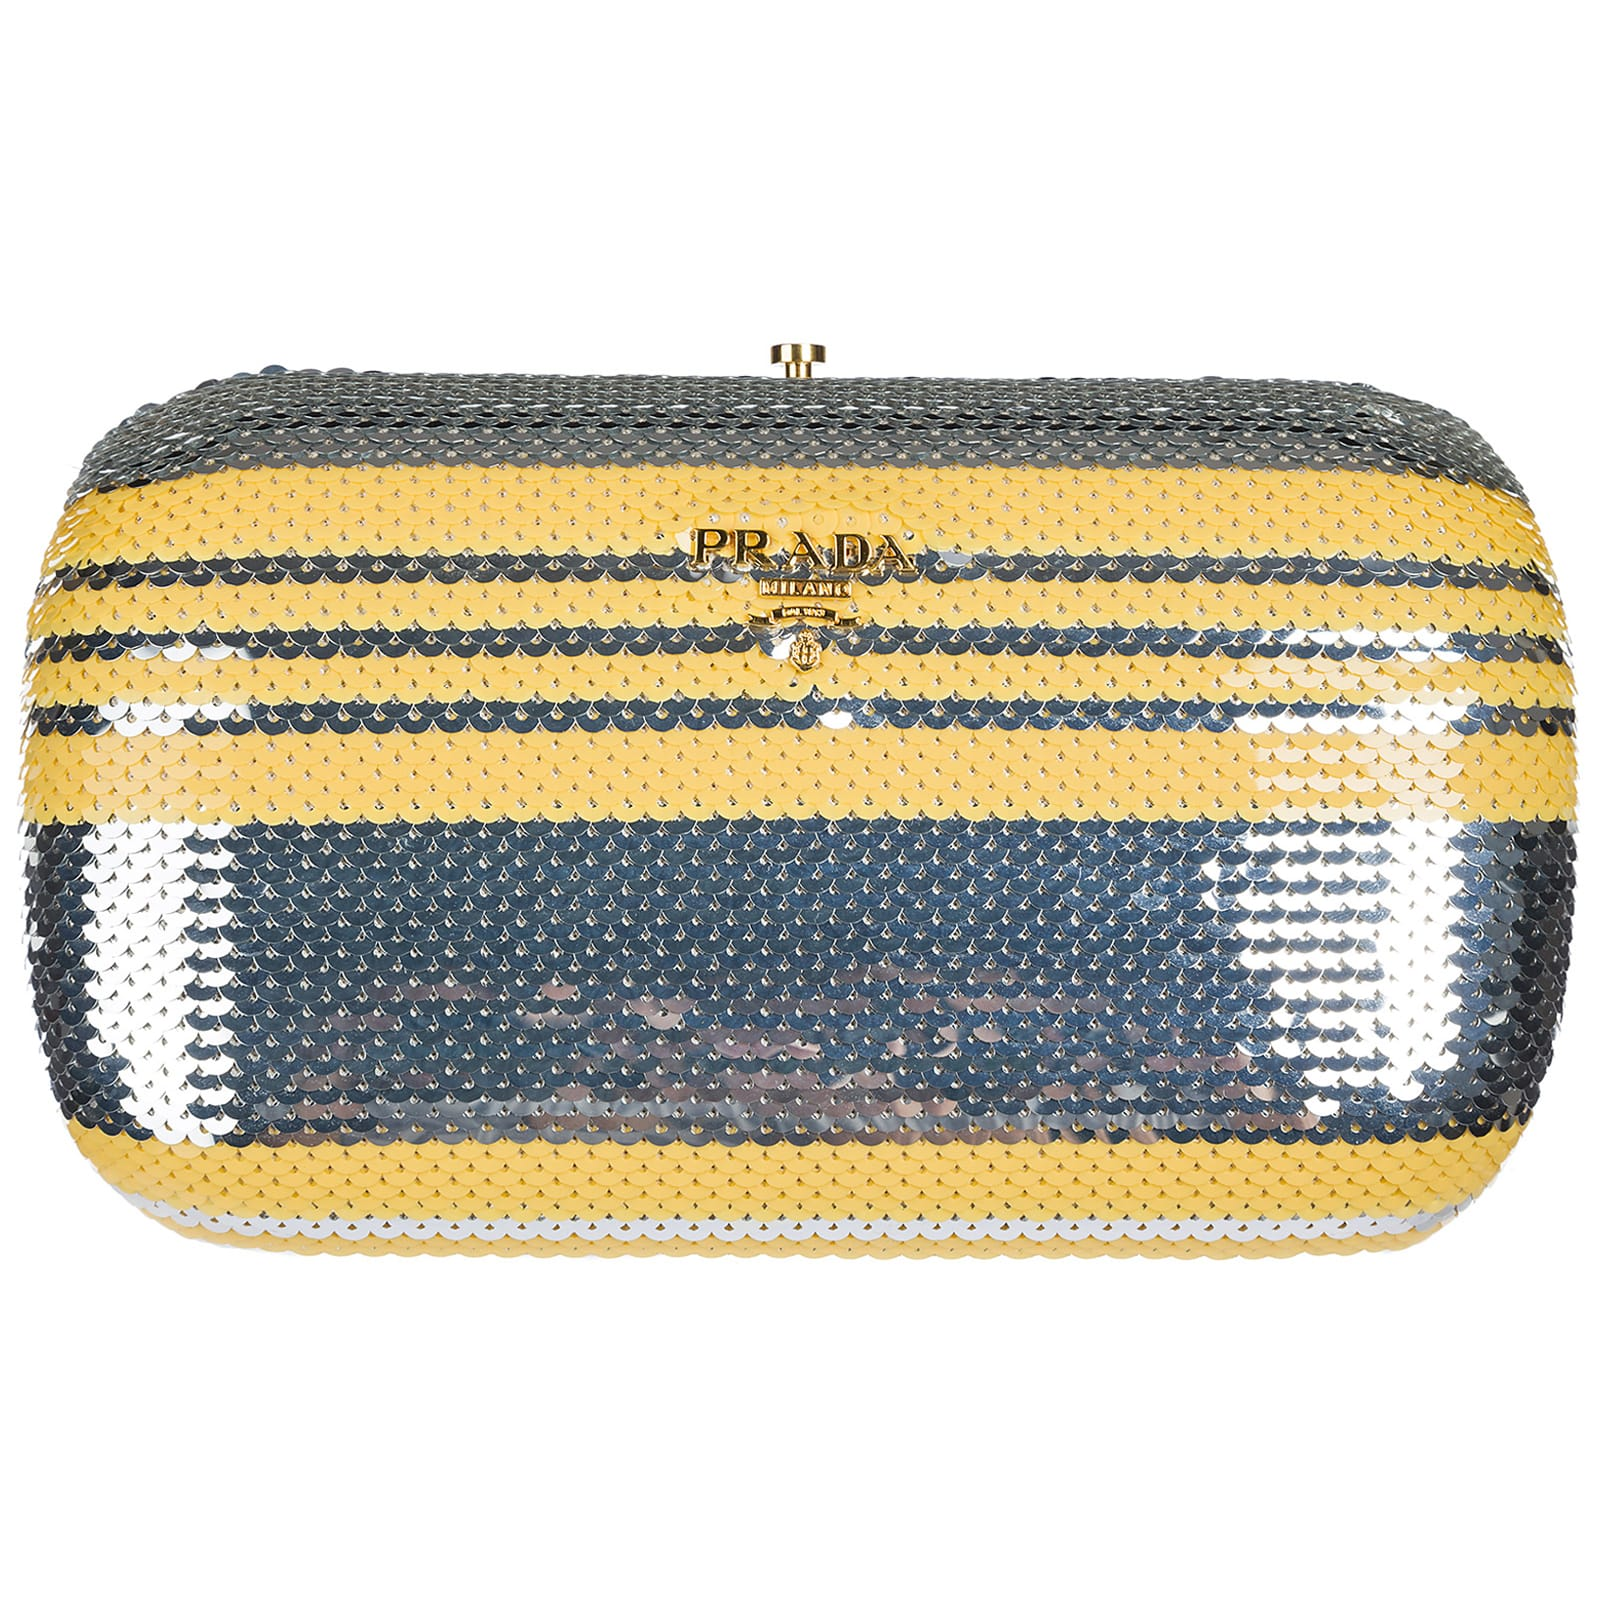 Prada Space Plein Clutch Bag